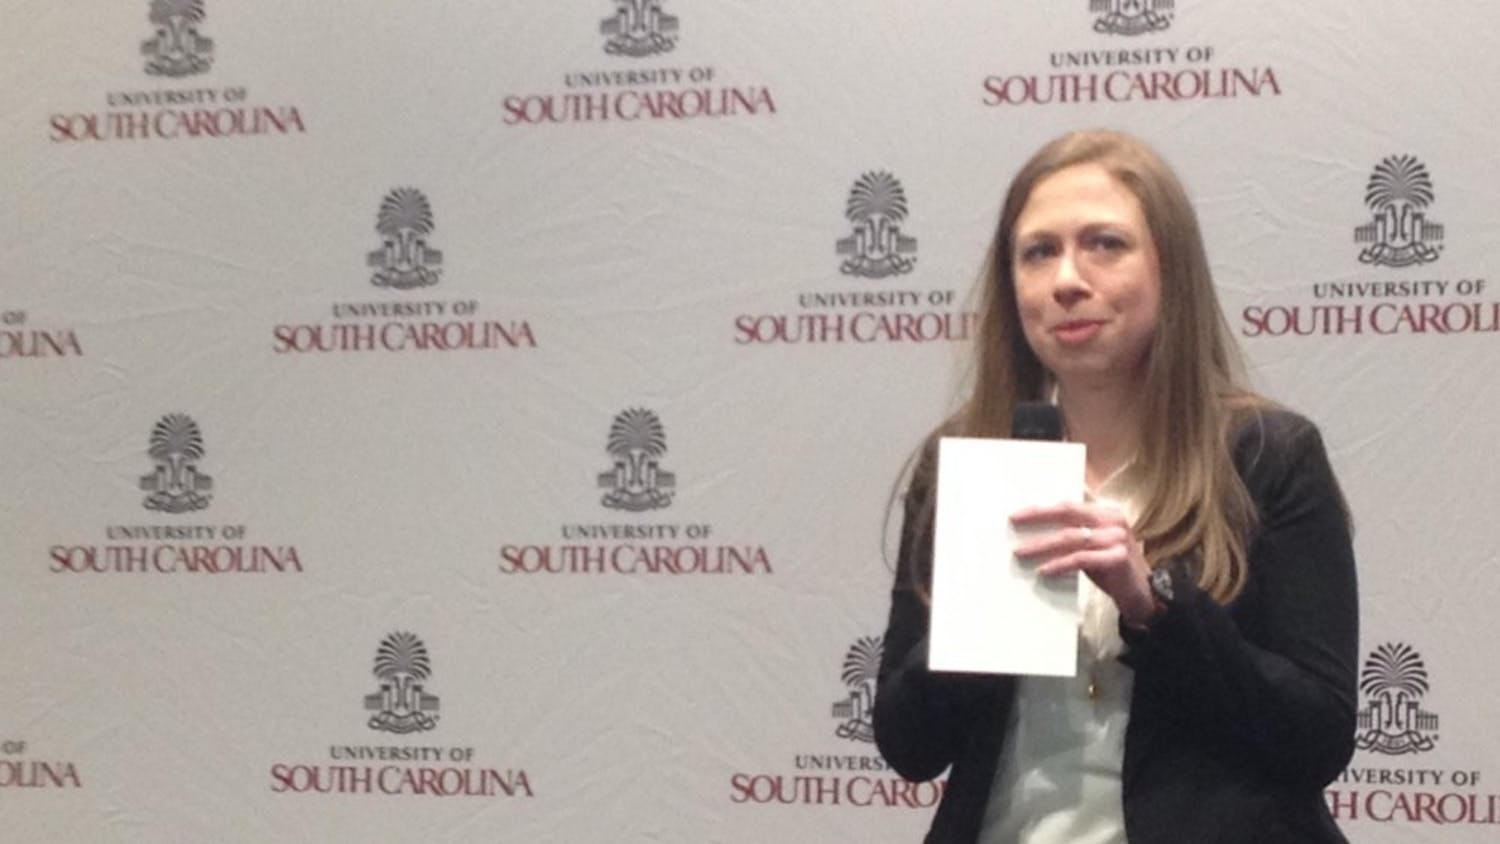 Chelsea Clinton appeared on behalf of her mother Hillary's presidential campaign Friday afternoon at Capstone House.